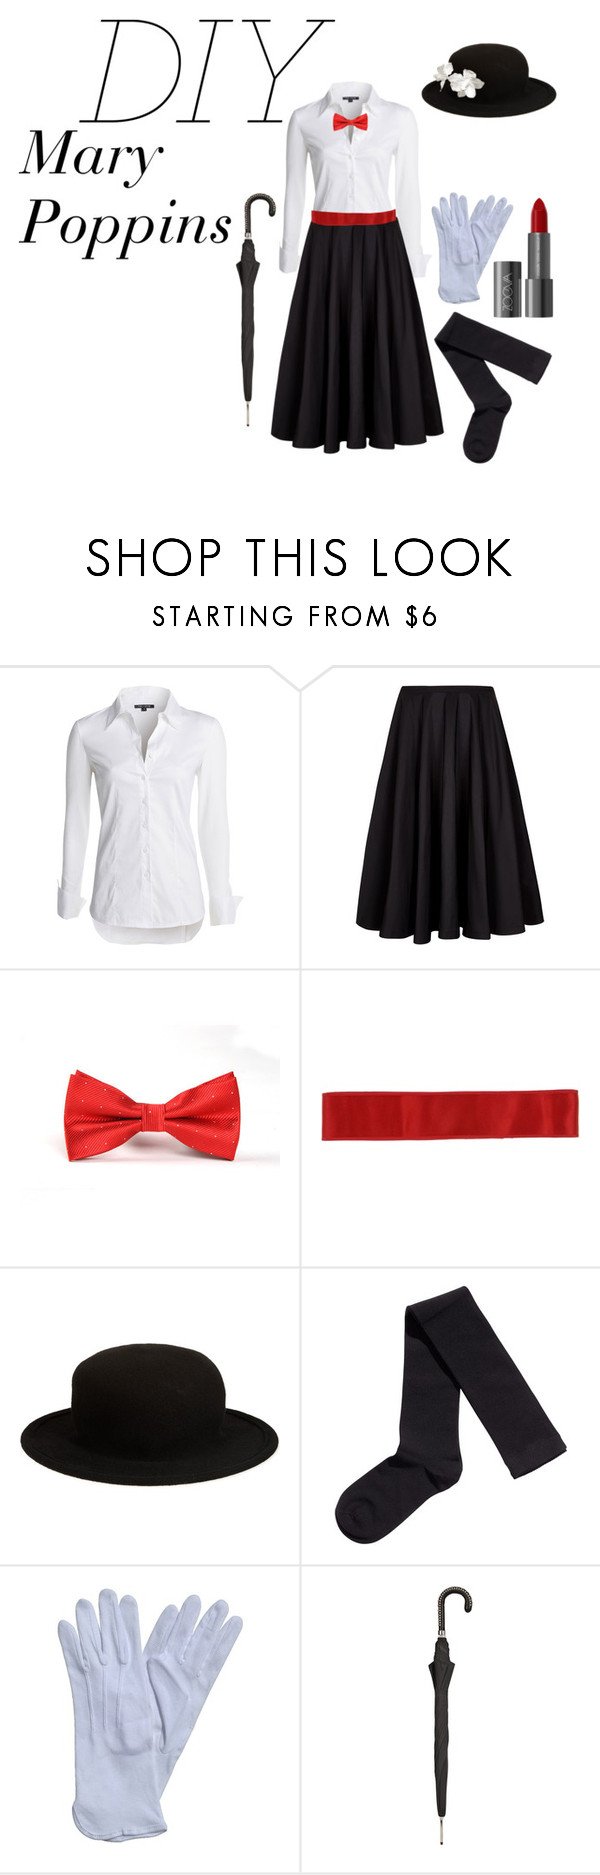 """Mary Poppins Halloween Costume"" by lizajayne ❤ liked on Polyvore featuring NIC+ZOE, Ted Baker, Dolce&Gabbana, Comme des Garçons, H&M, Pasotti Ombrelli and Halloween"